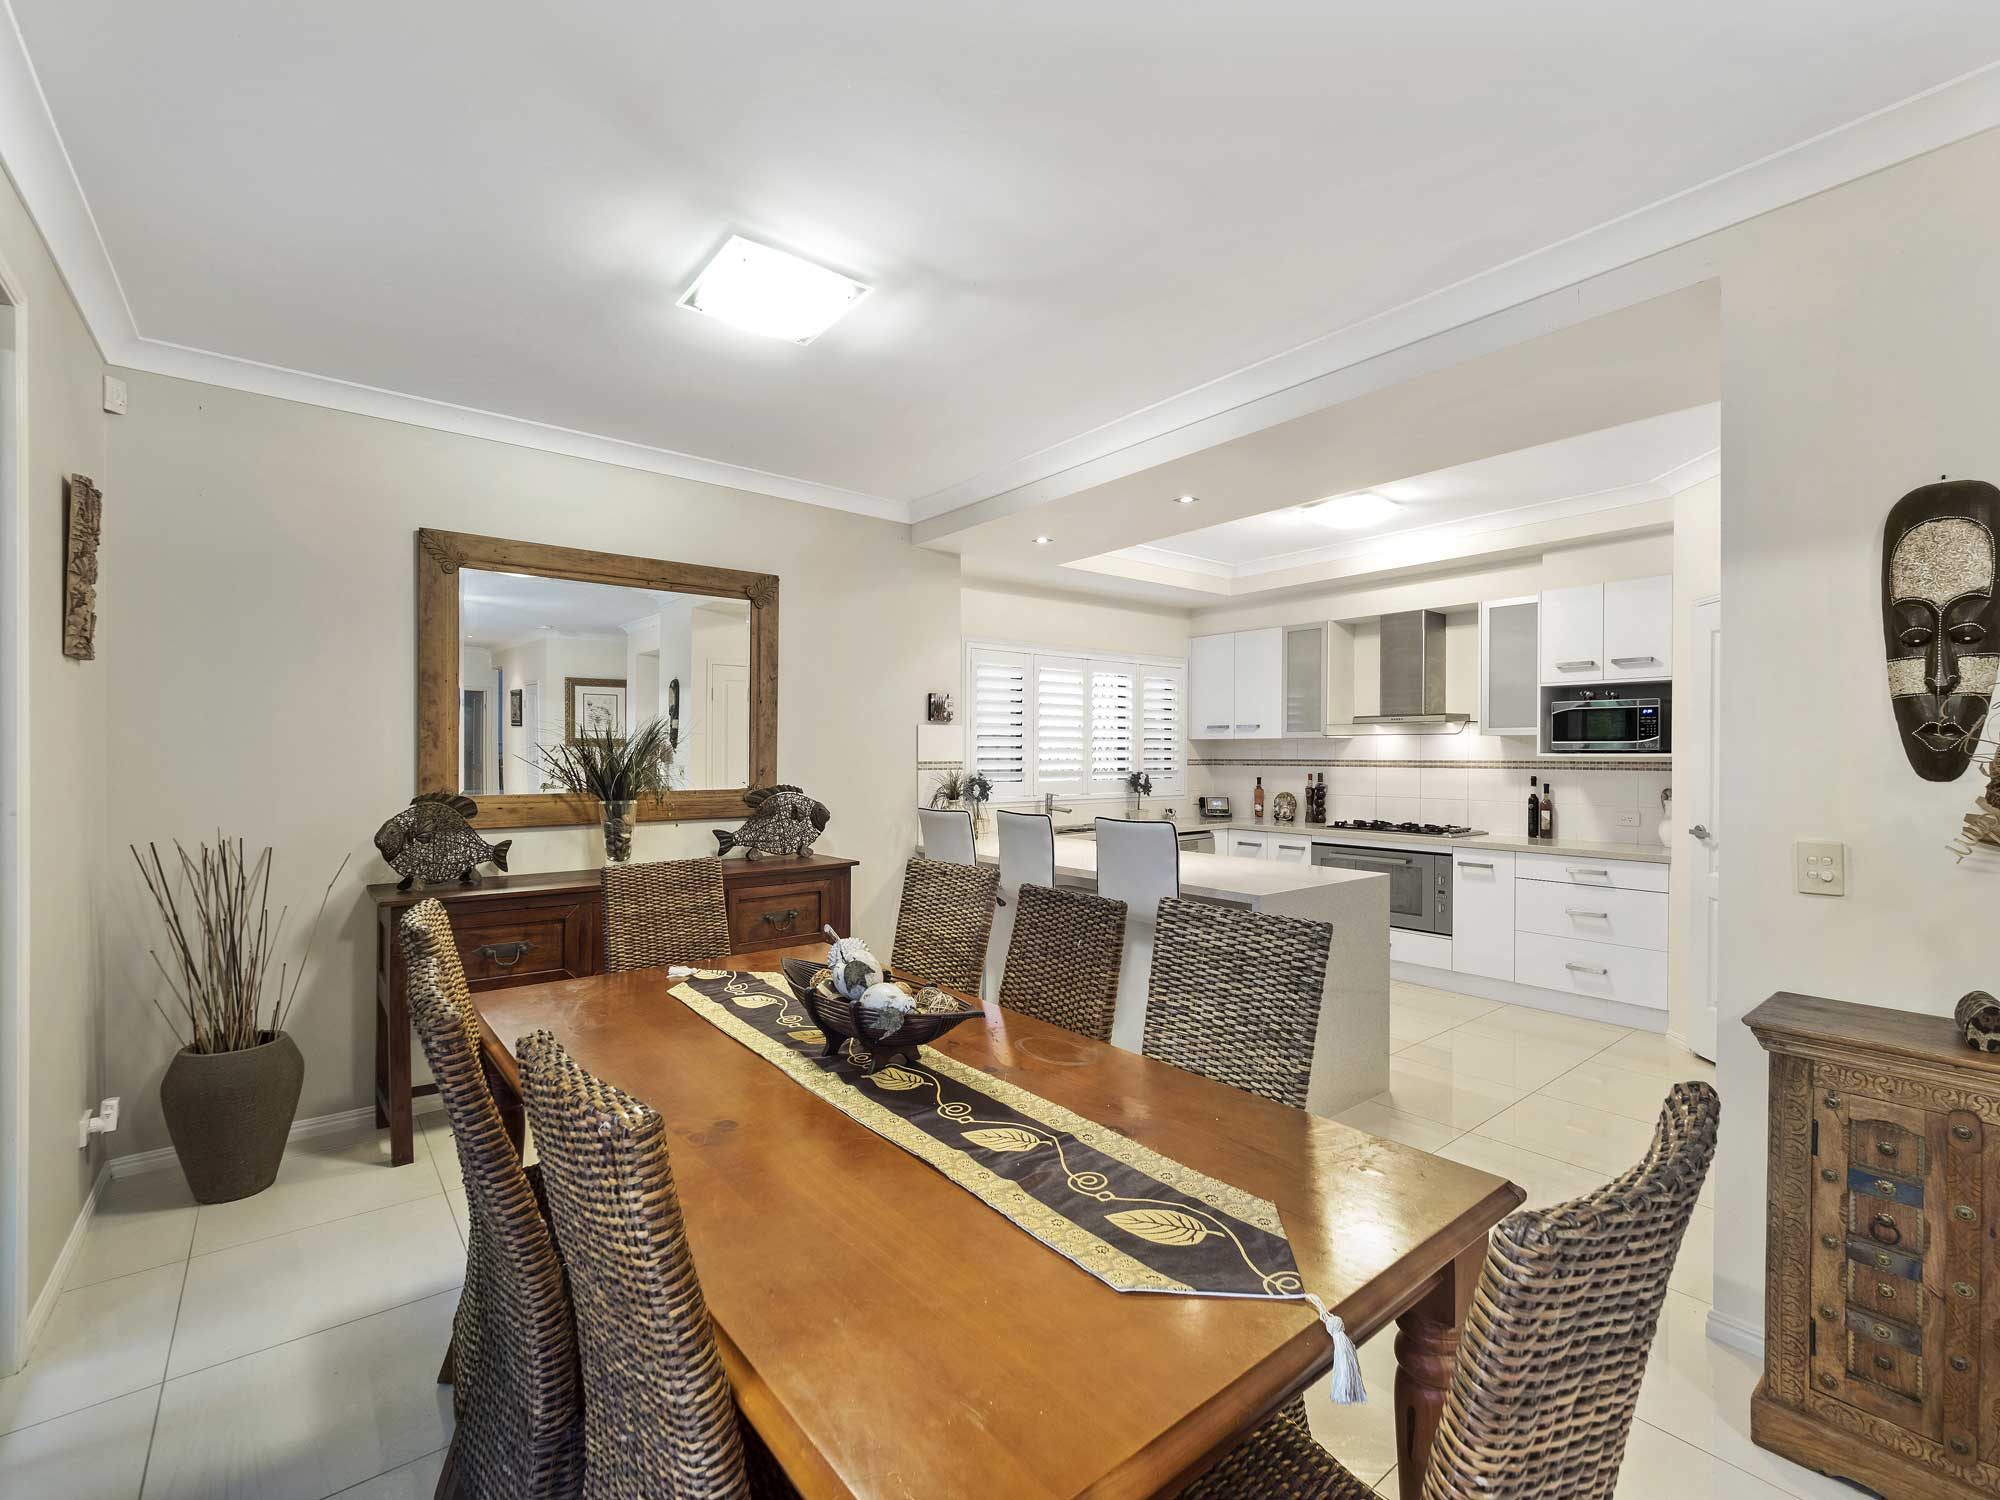 Residential homes for sale in Brisbane - indoor dining areas